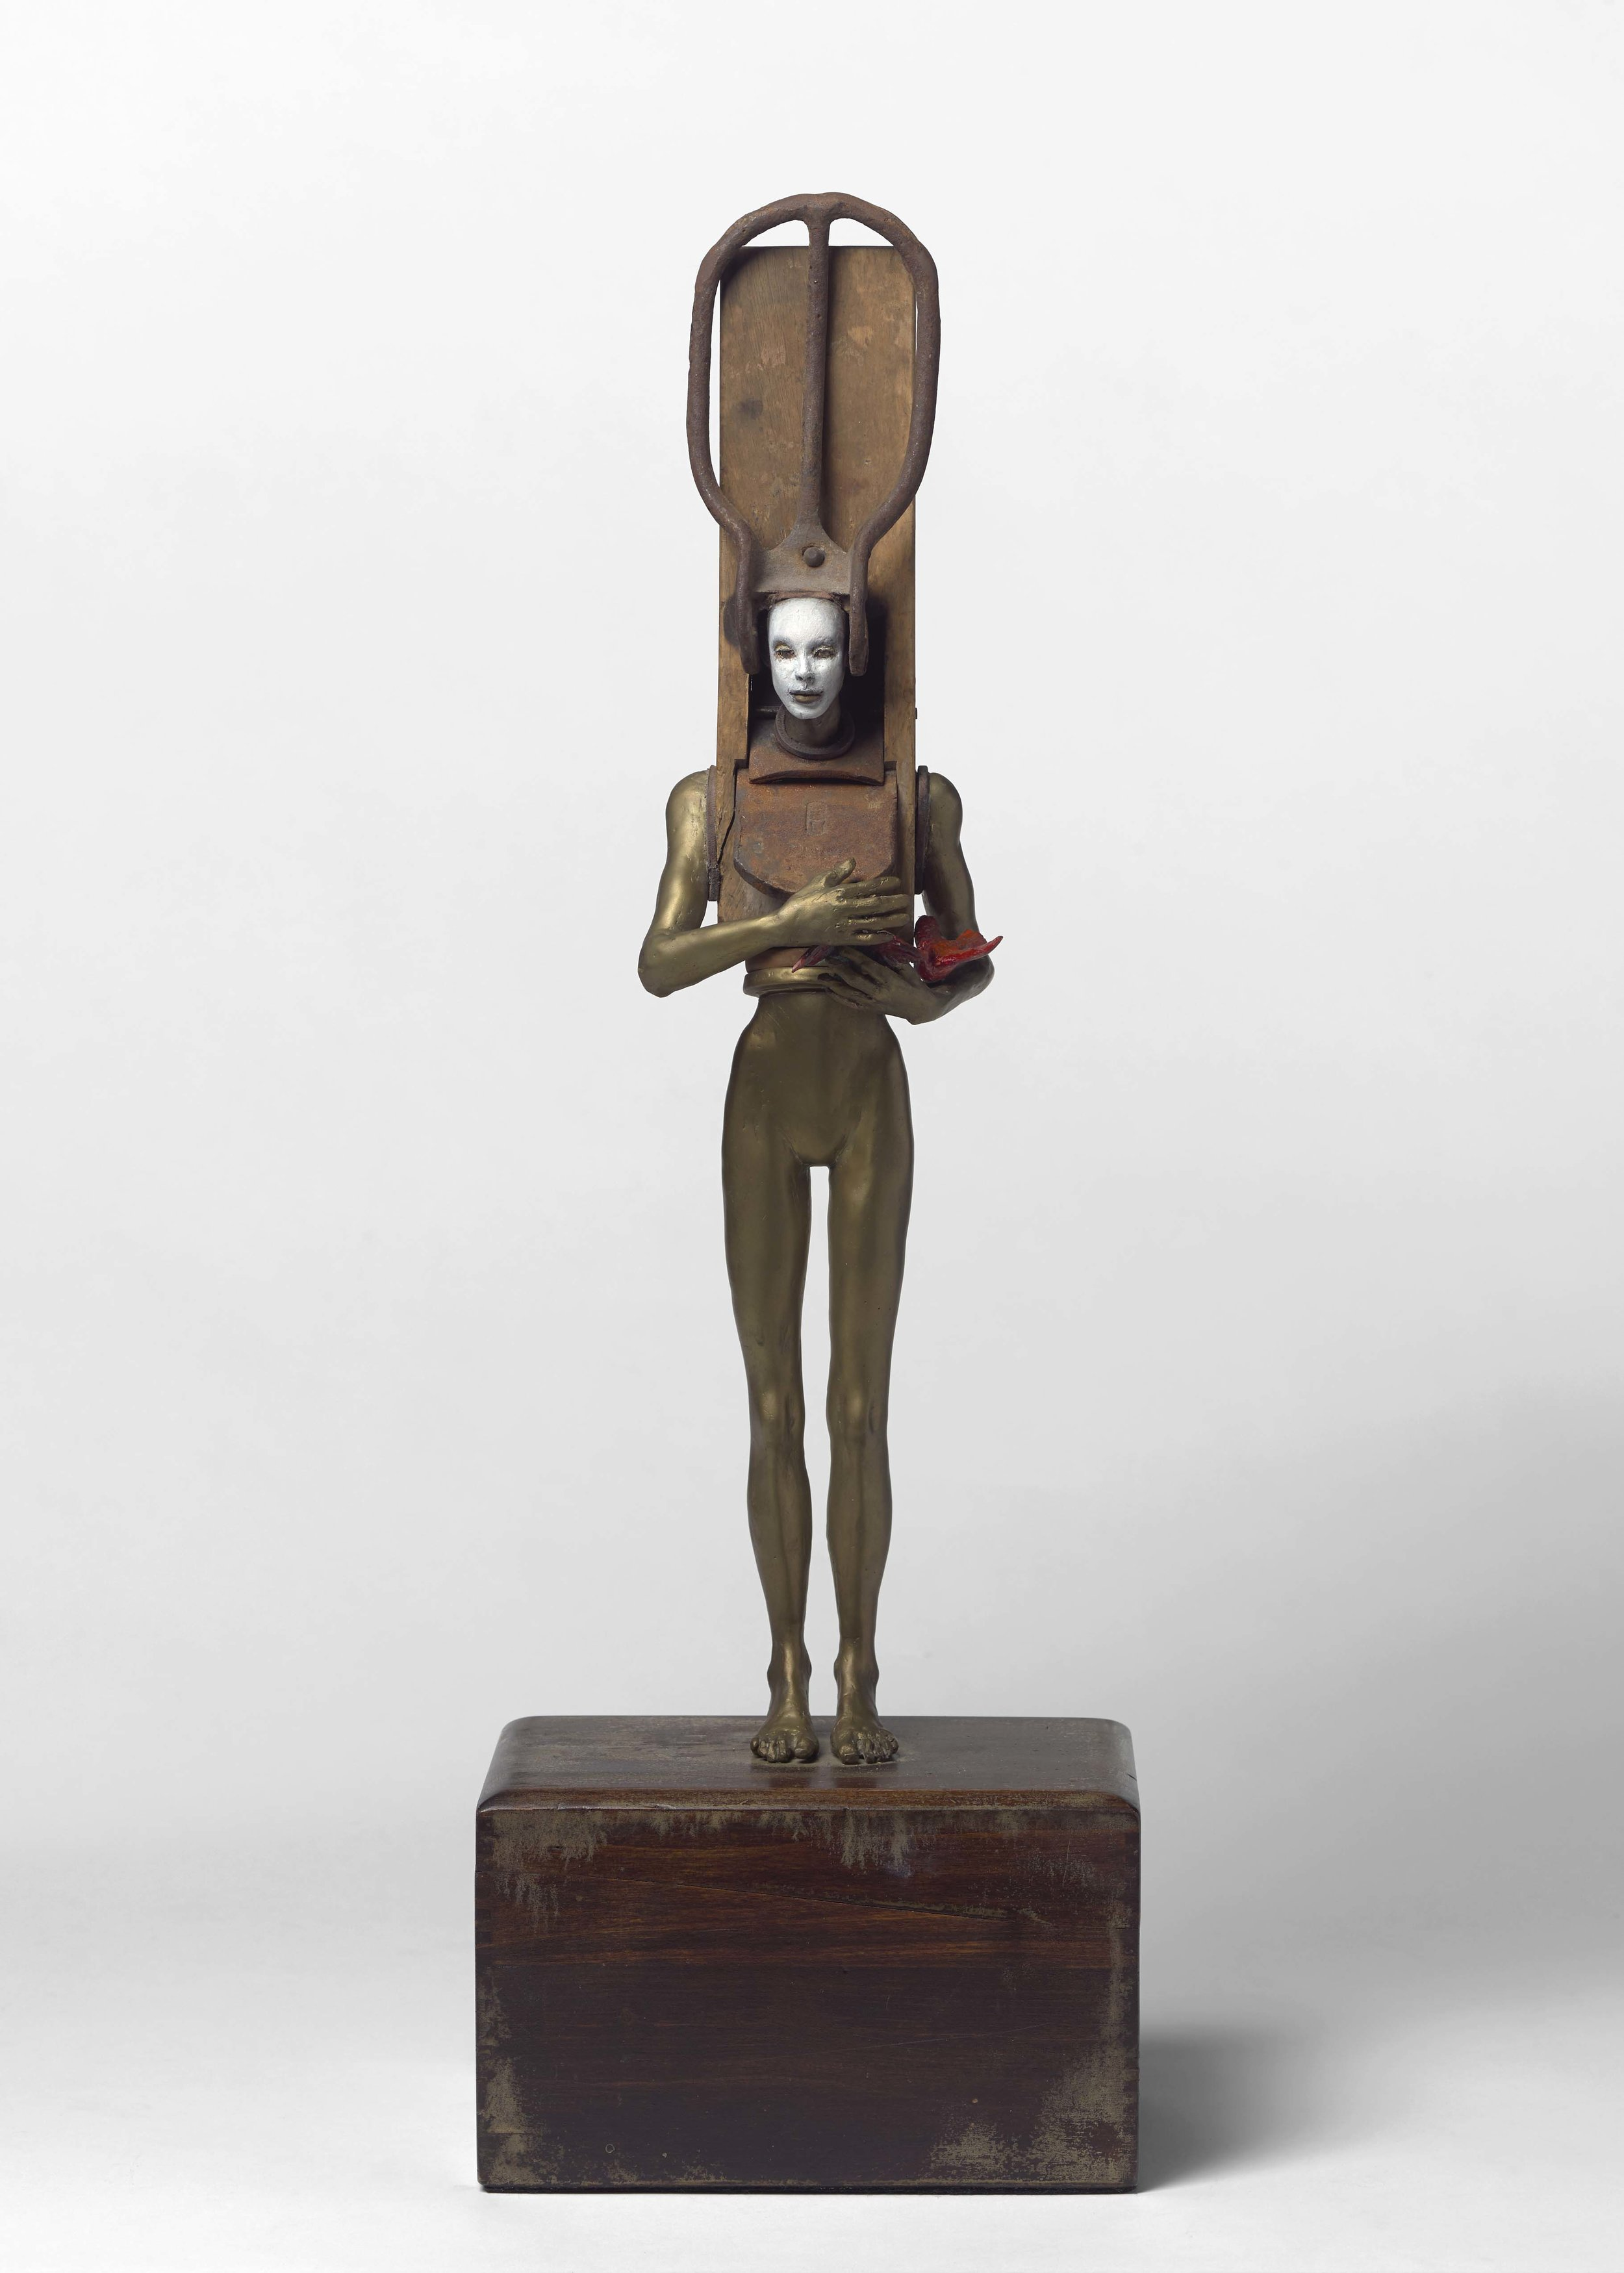 The Protector   2011  Bronze, wood, iron  29 x 9 1/2 x 7 inches; 73.7 x 24.1 x 17.8 centimeters